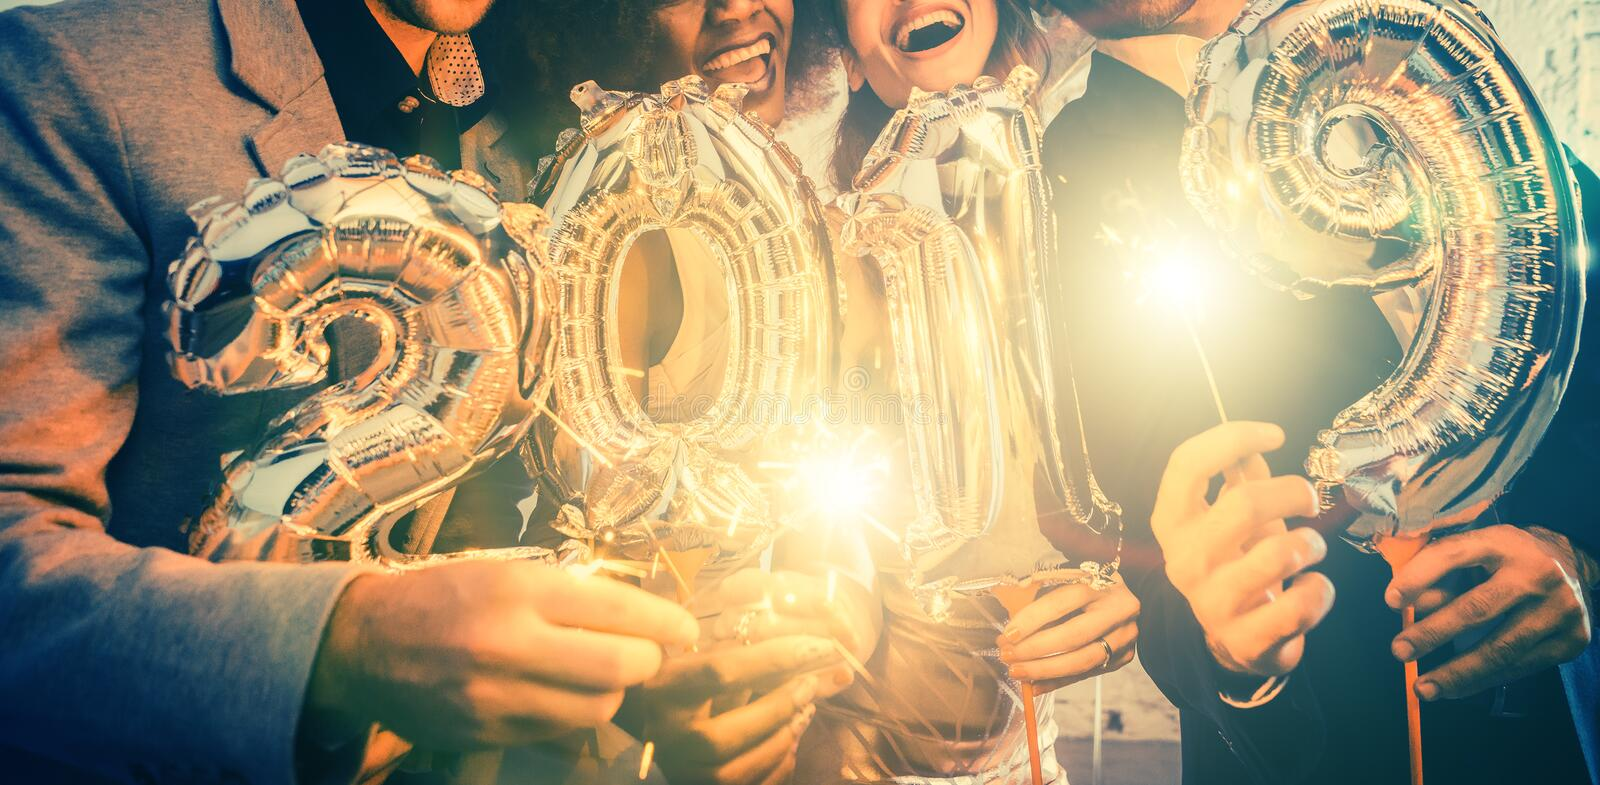 Group of party people celebrating the arrival of 2019 stock photography